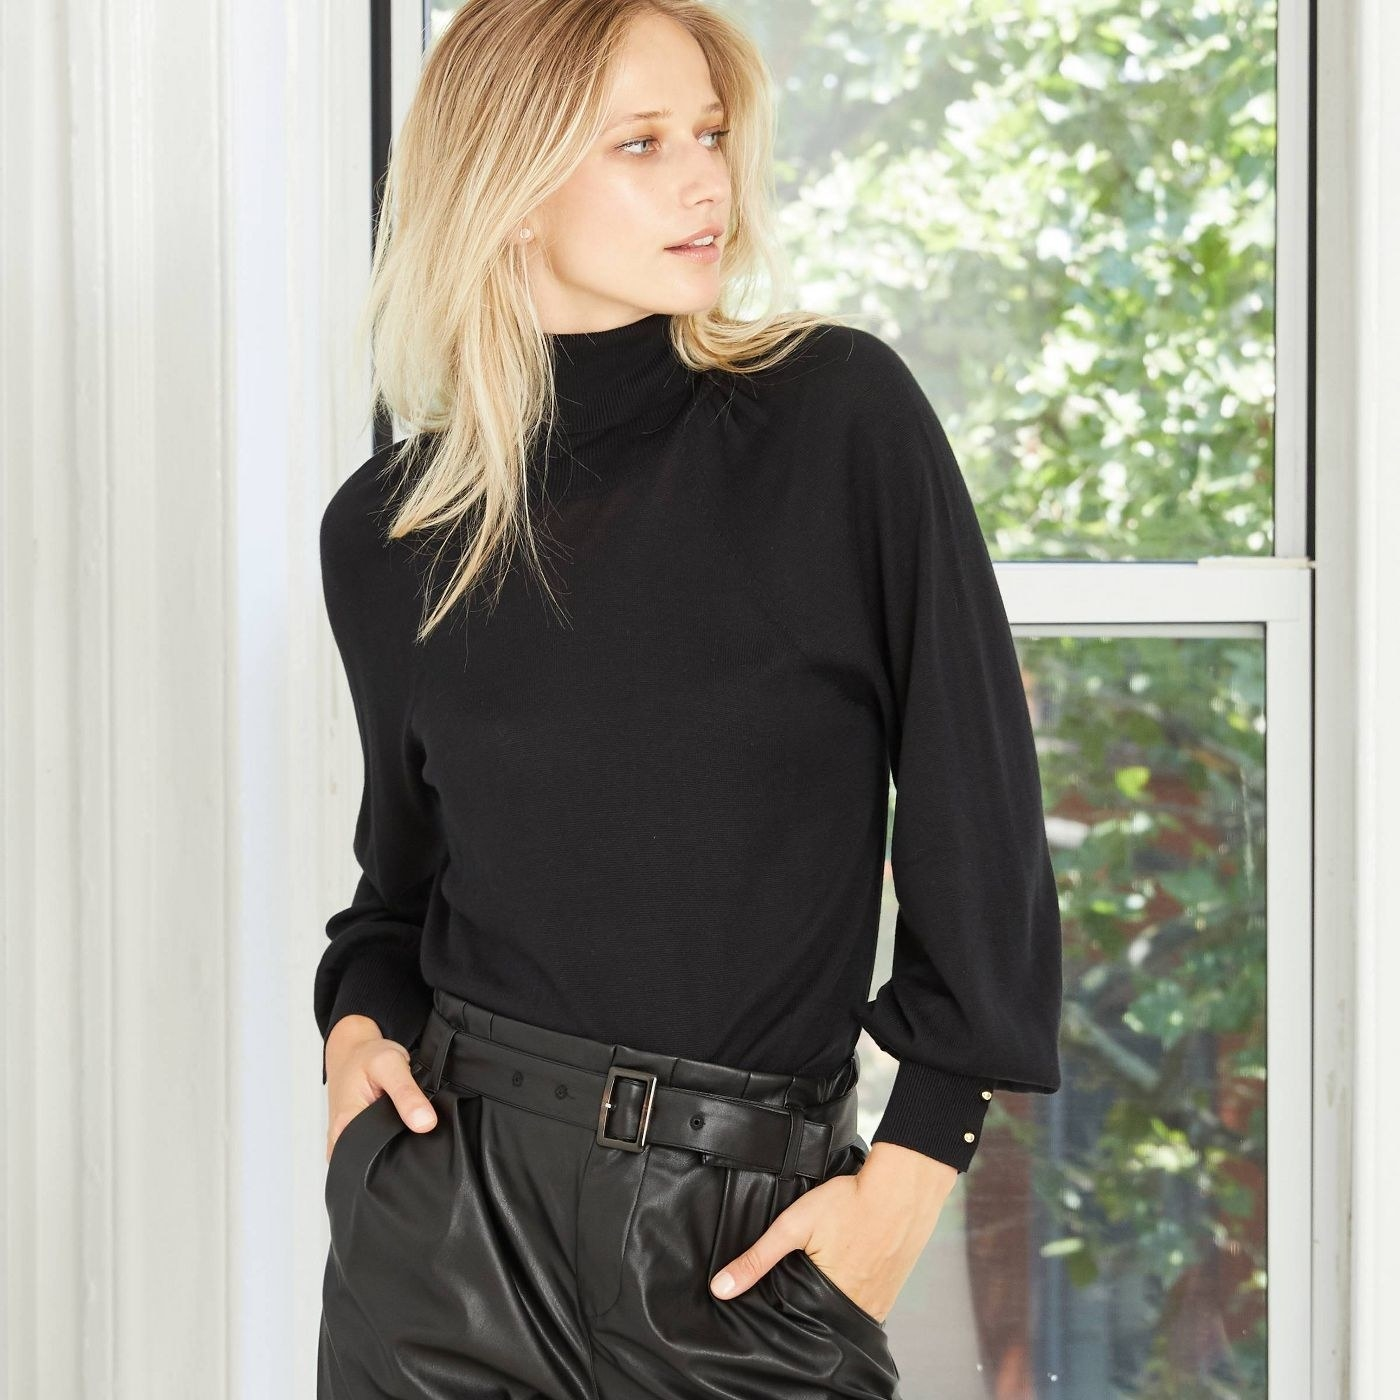 Model in black turtleneck with puffy sleeves